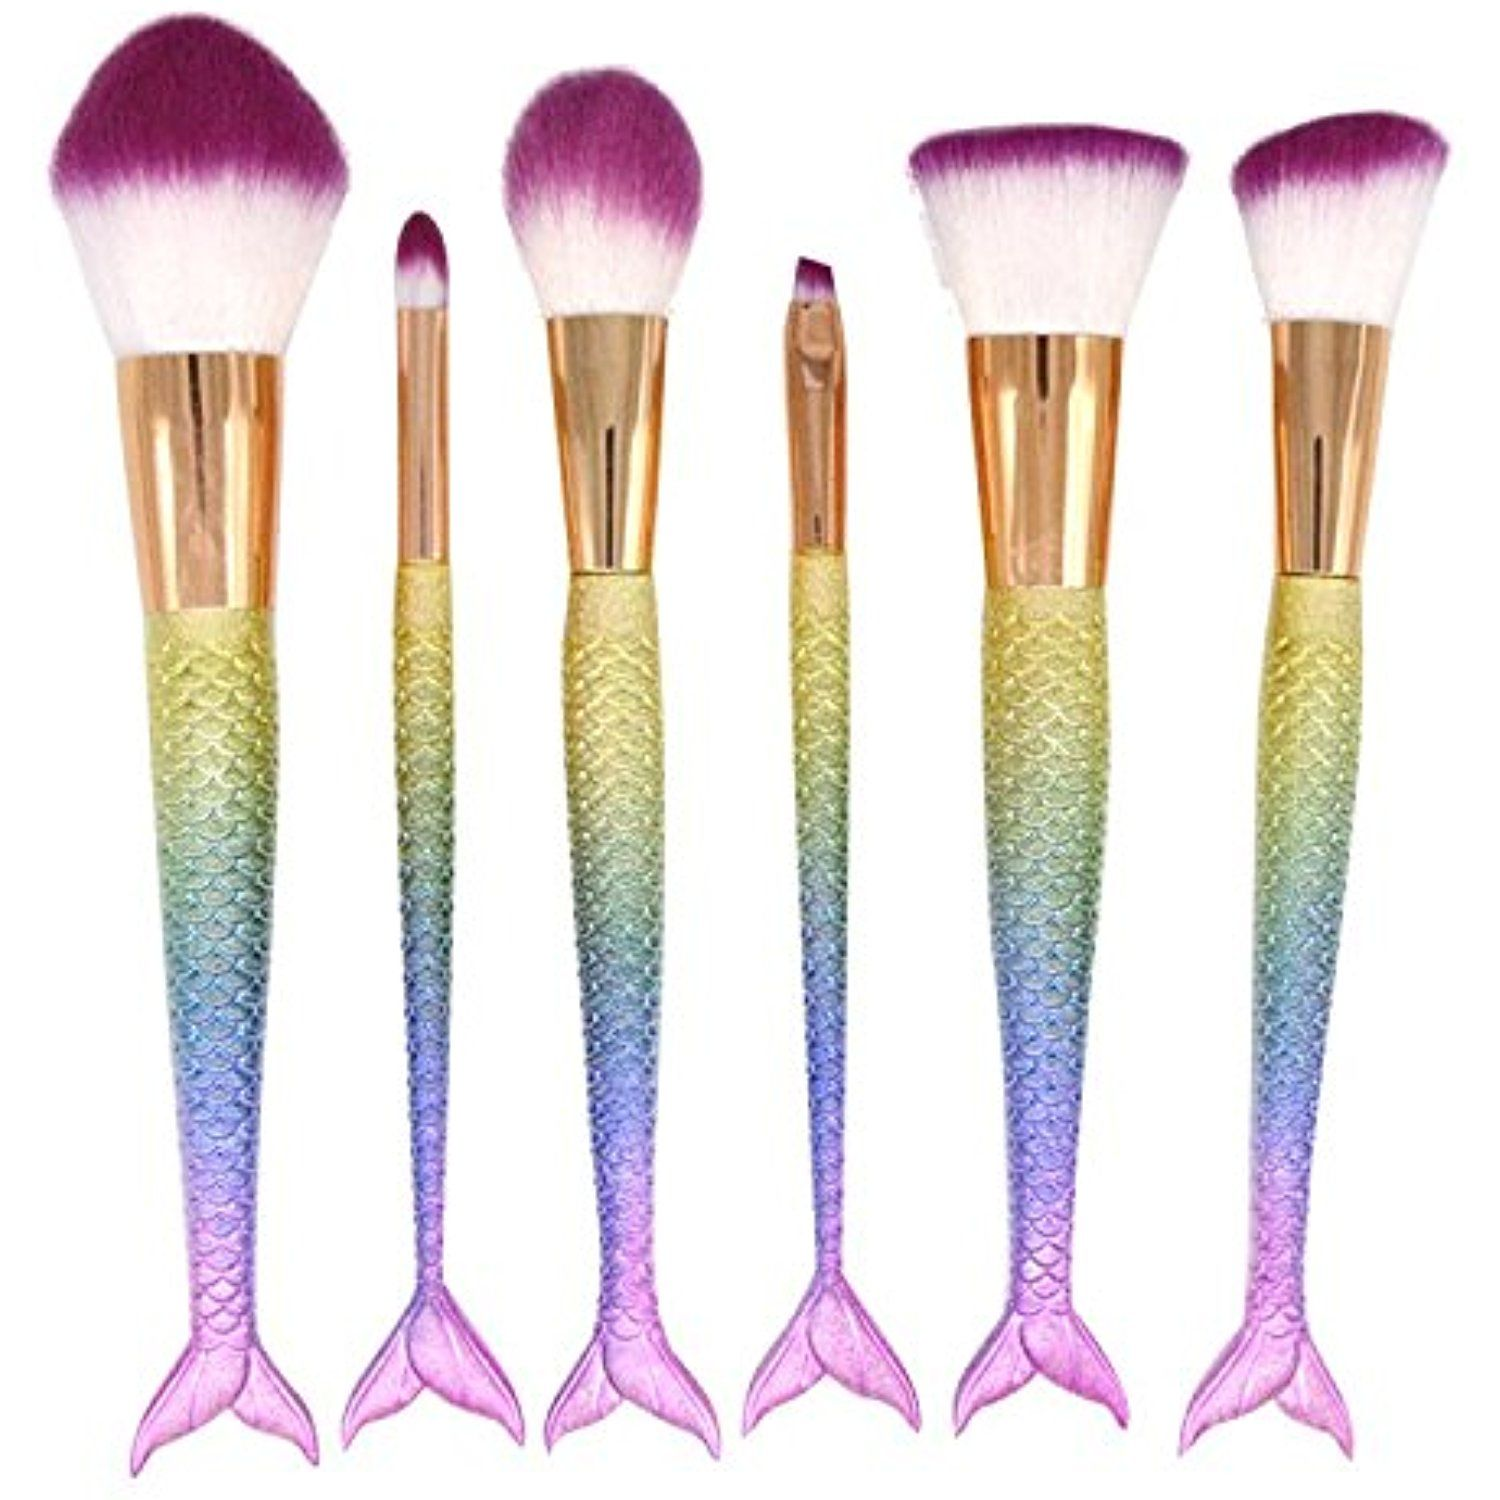 Makeup Brush Set Synthetic Kabuki Foundation Blending